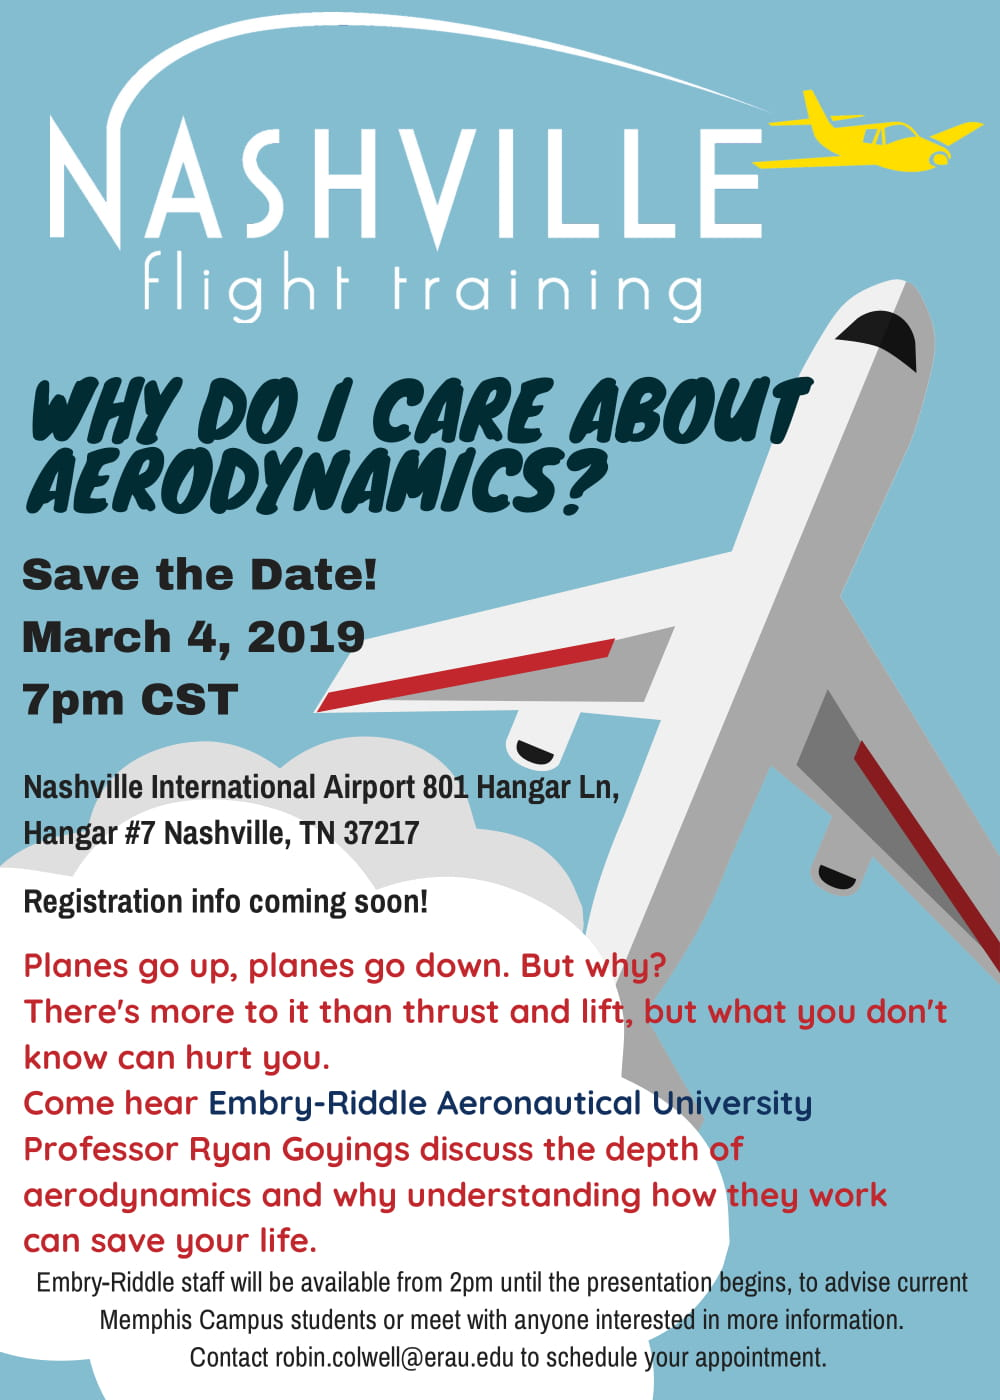 Nashville Flight Training News and Updates - Discover More